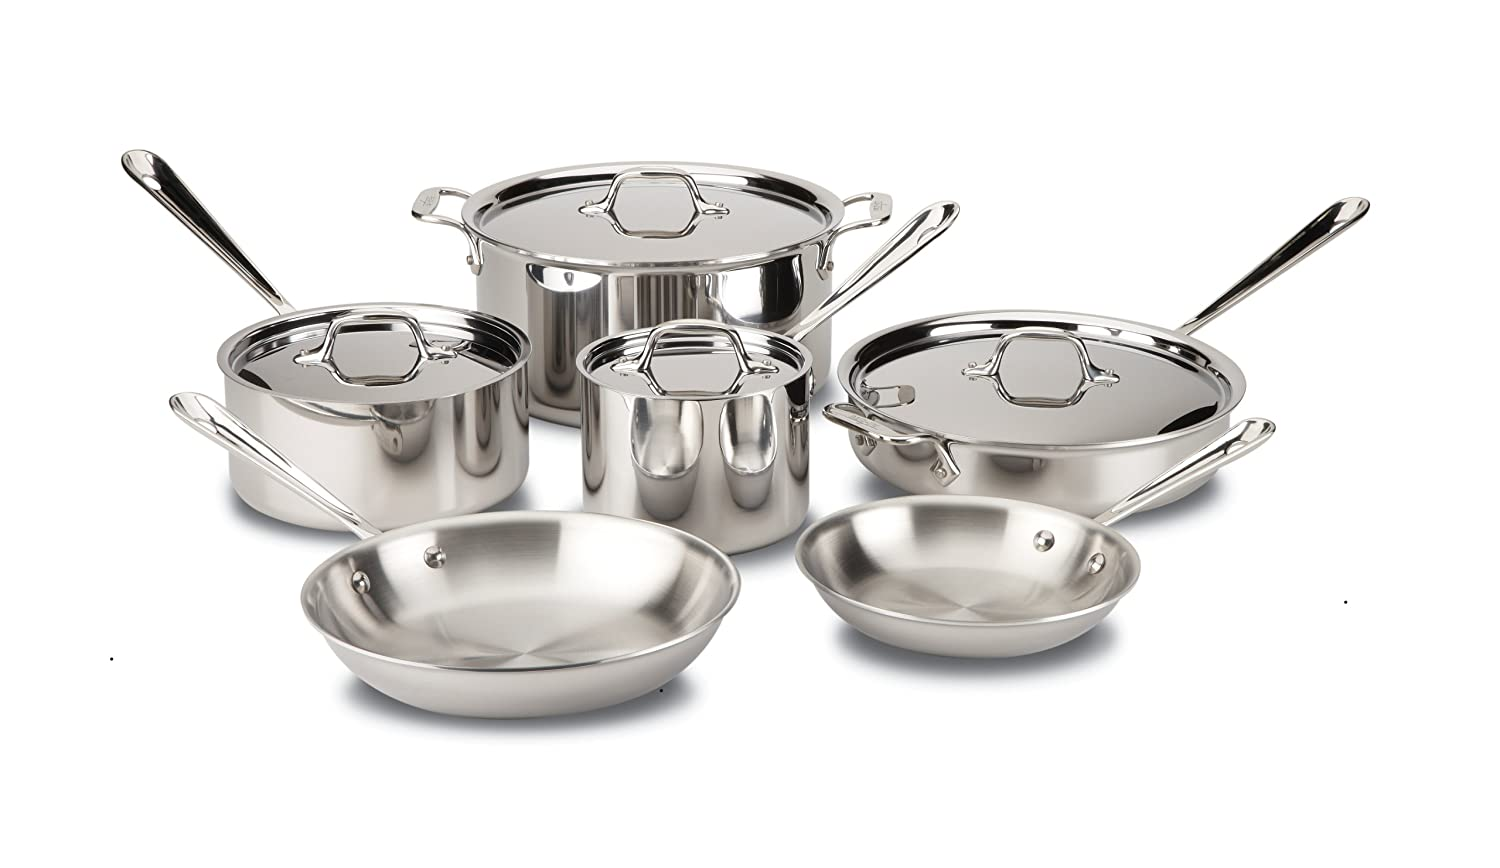 Top 5 Best Stainless Steel Cookware (2020 Reviews & Buying Guide) 3